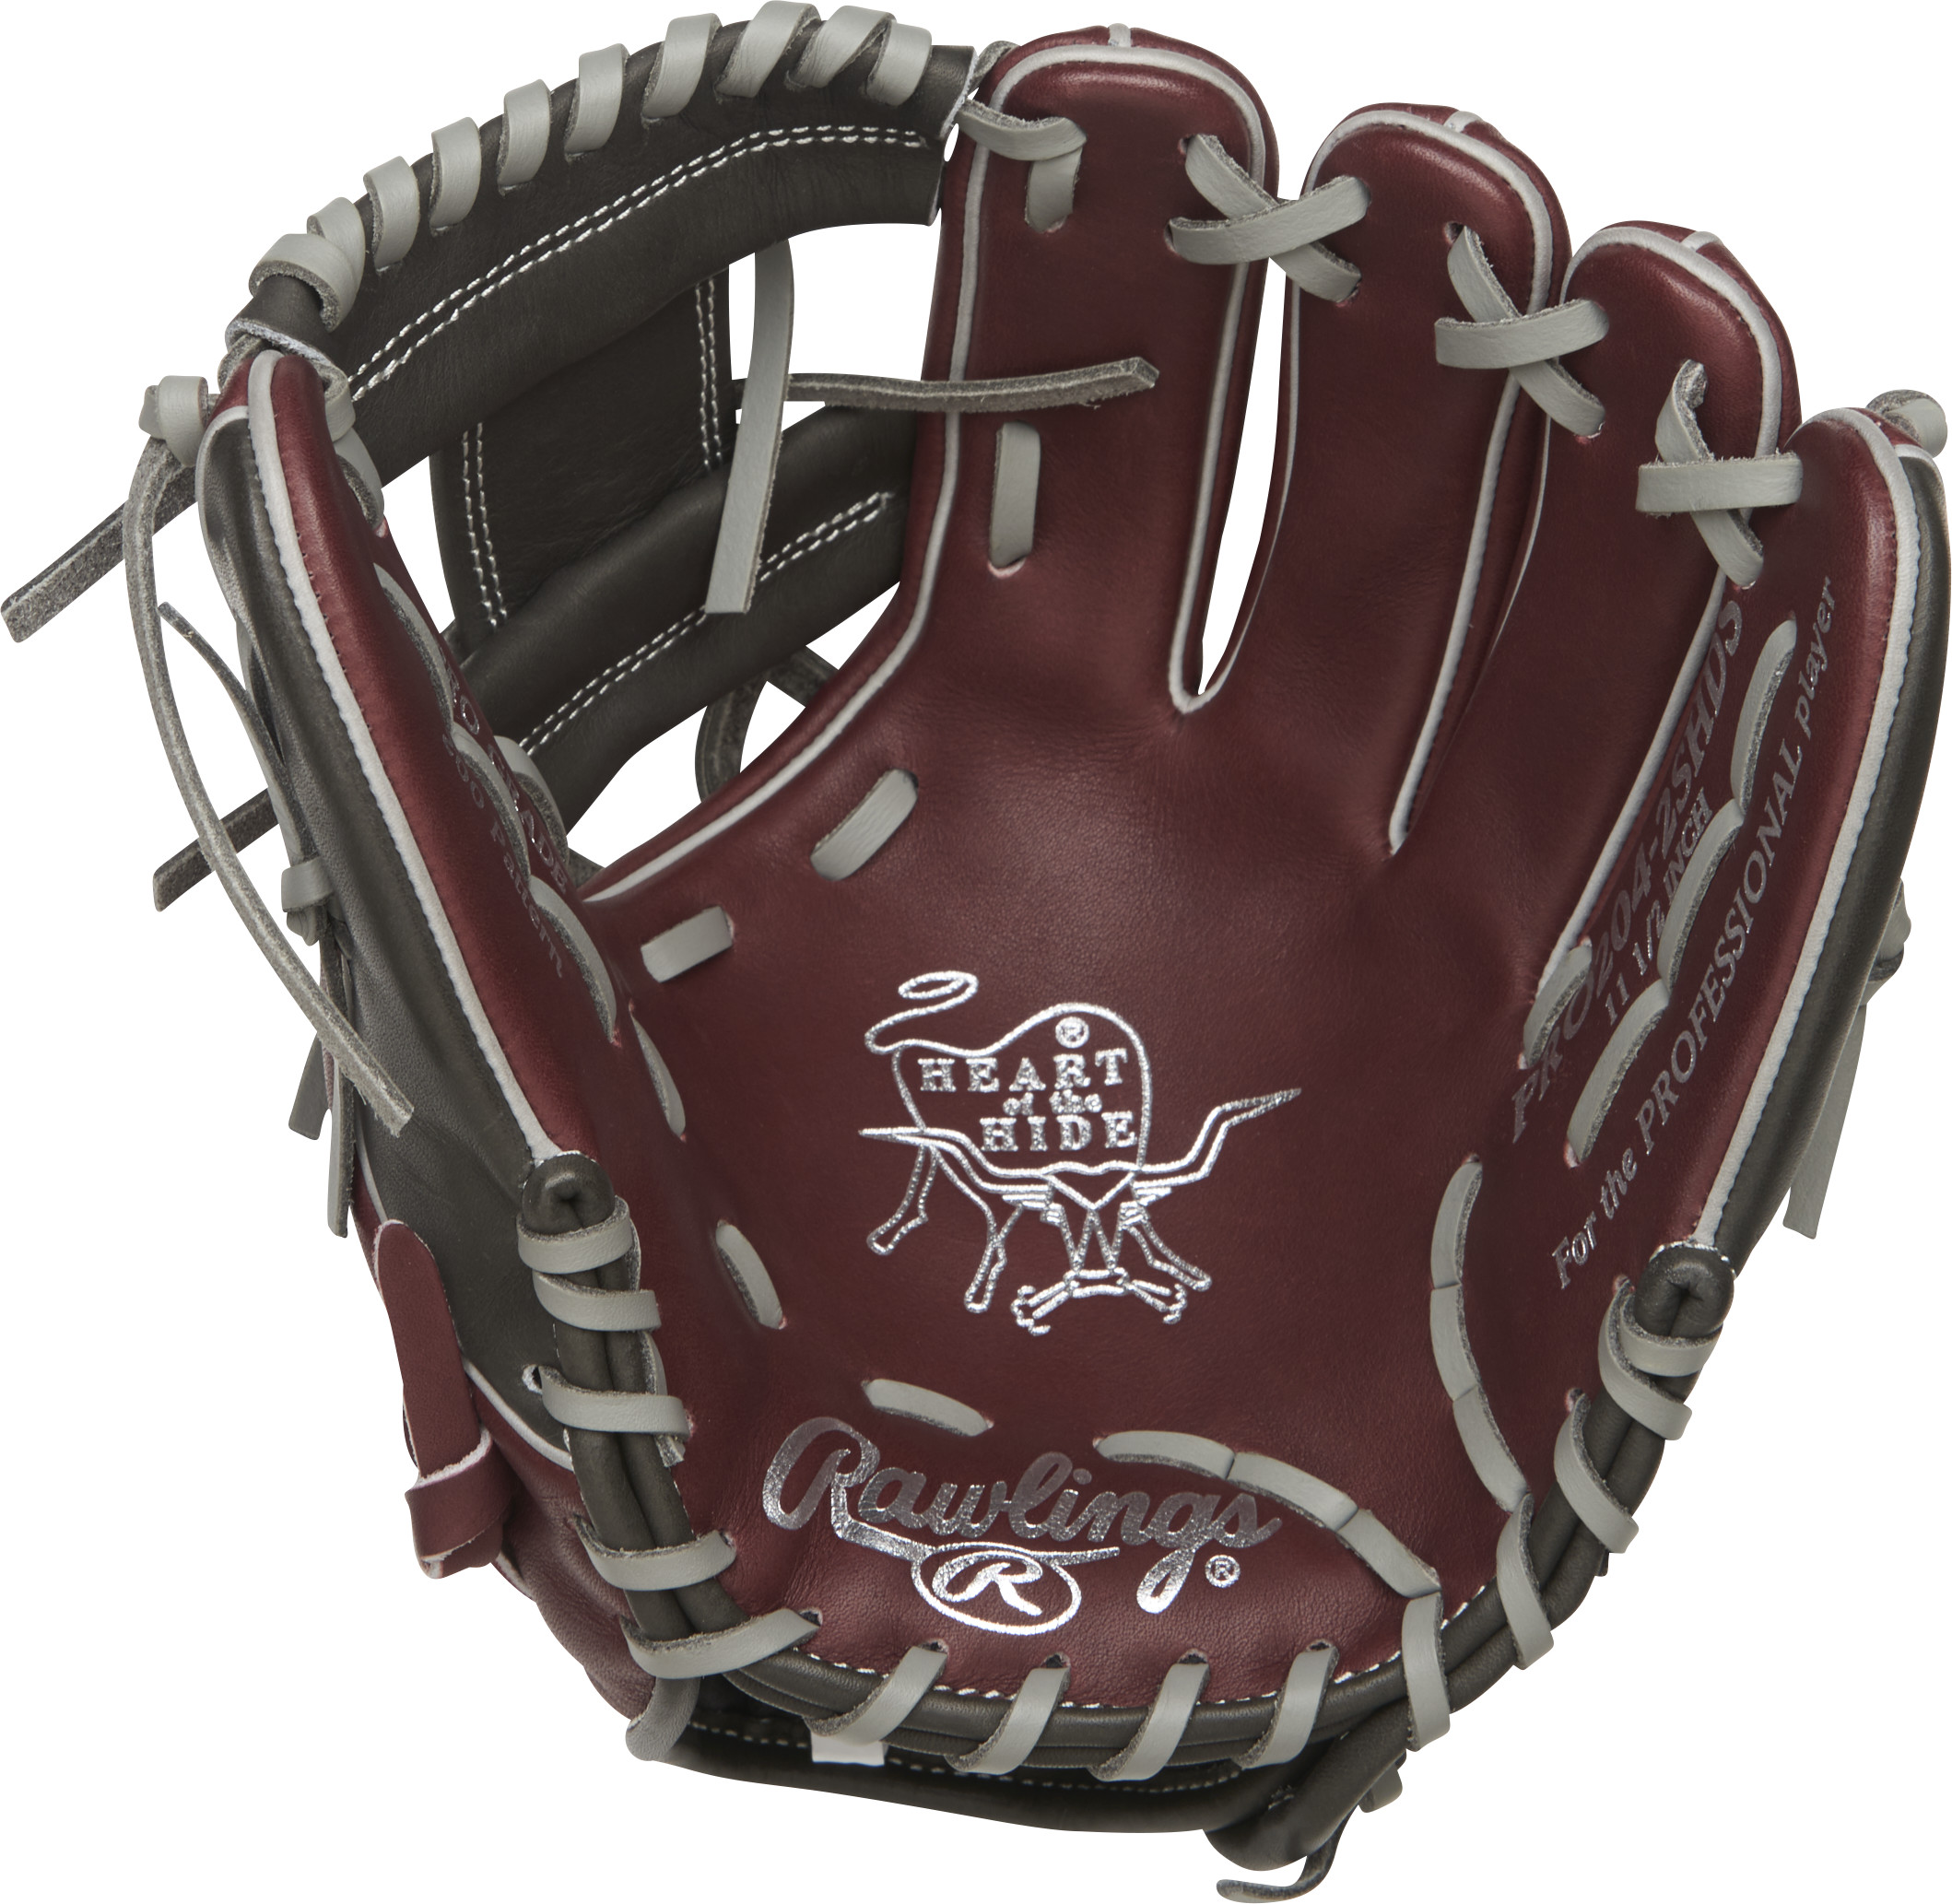 http://www.bestbatdeals.com/images/gloves/rawlings/PRO204-2SHDS-1.jpg